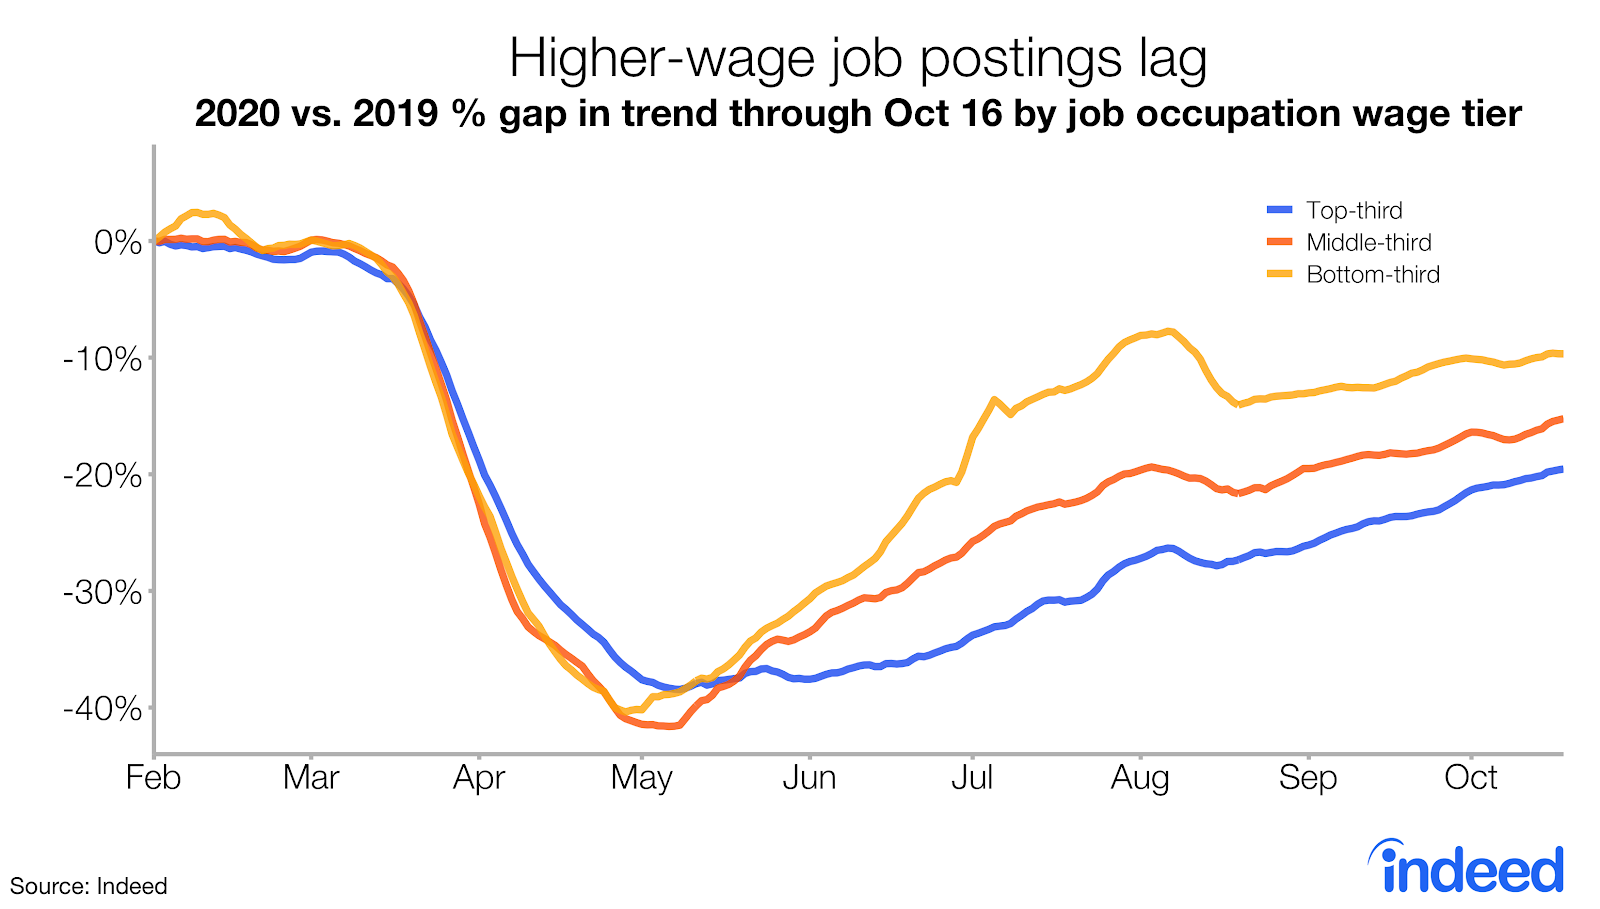 Line graph showing higher-wage job postings lag.